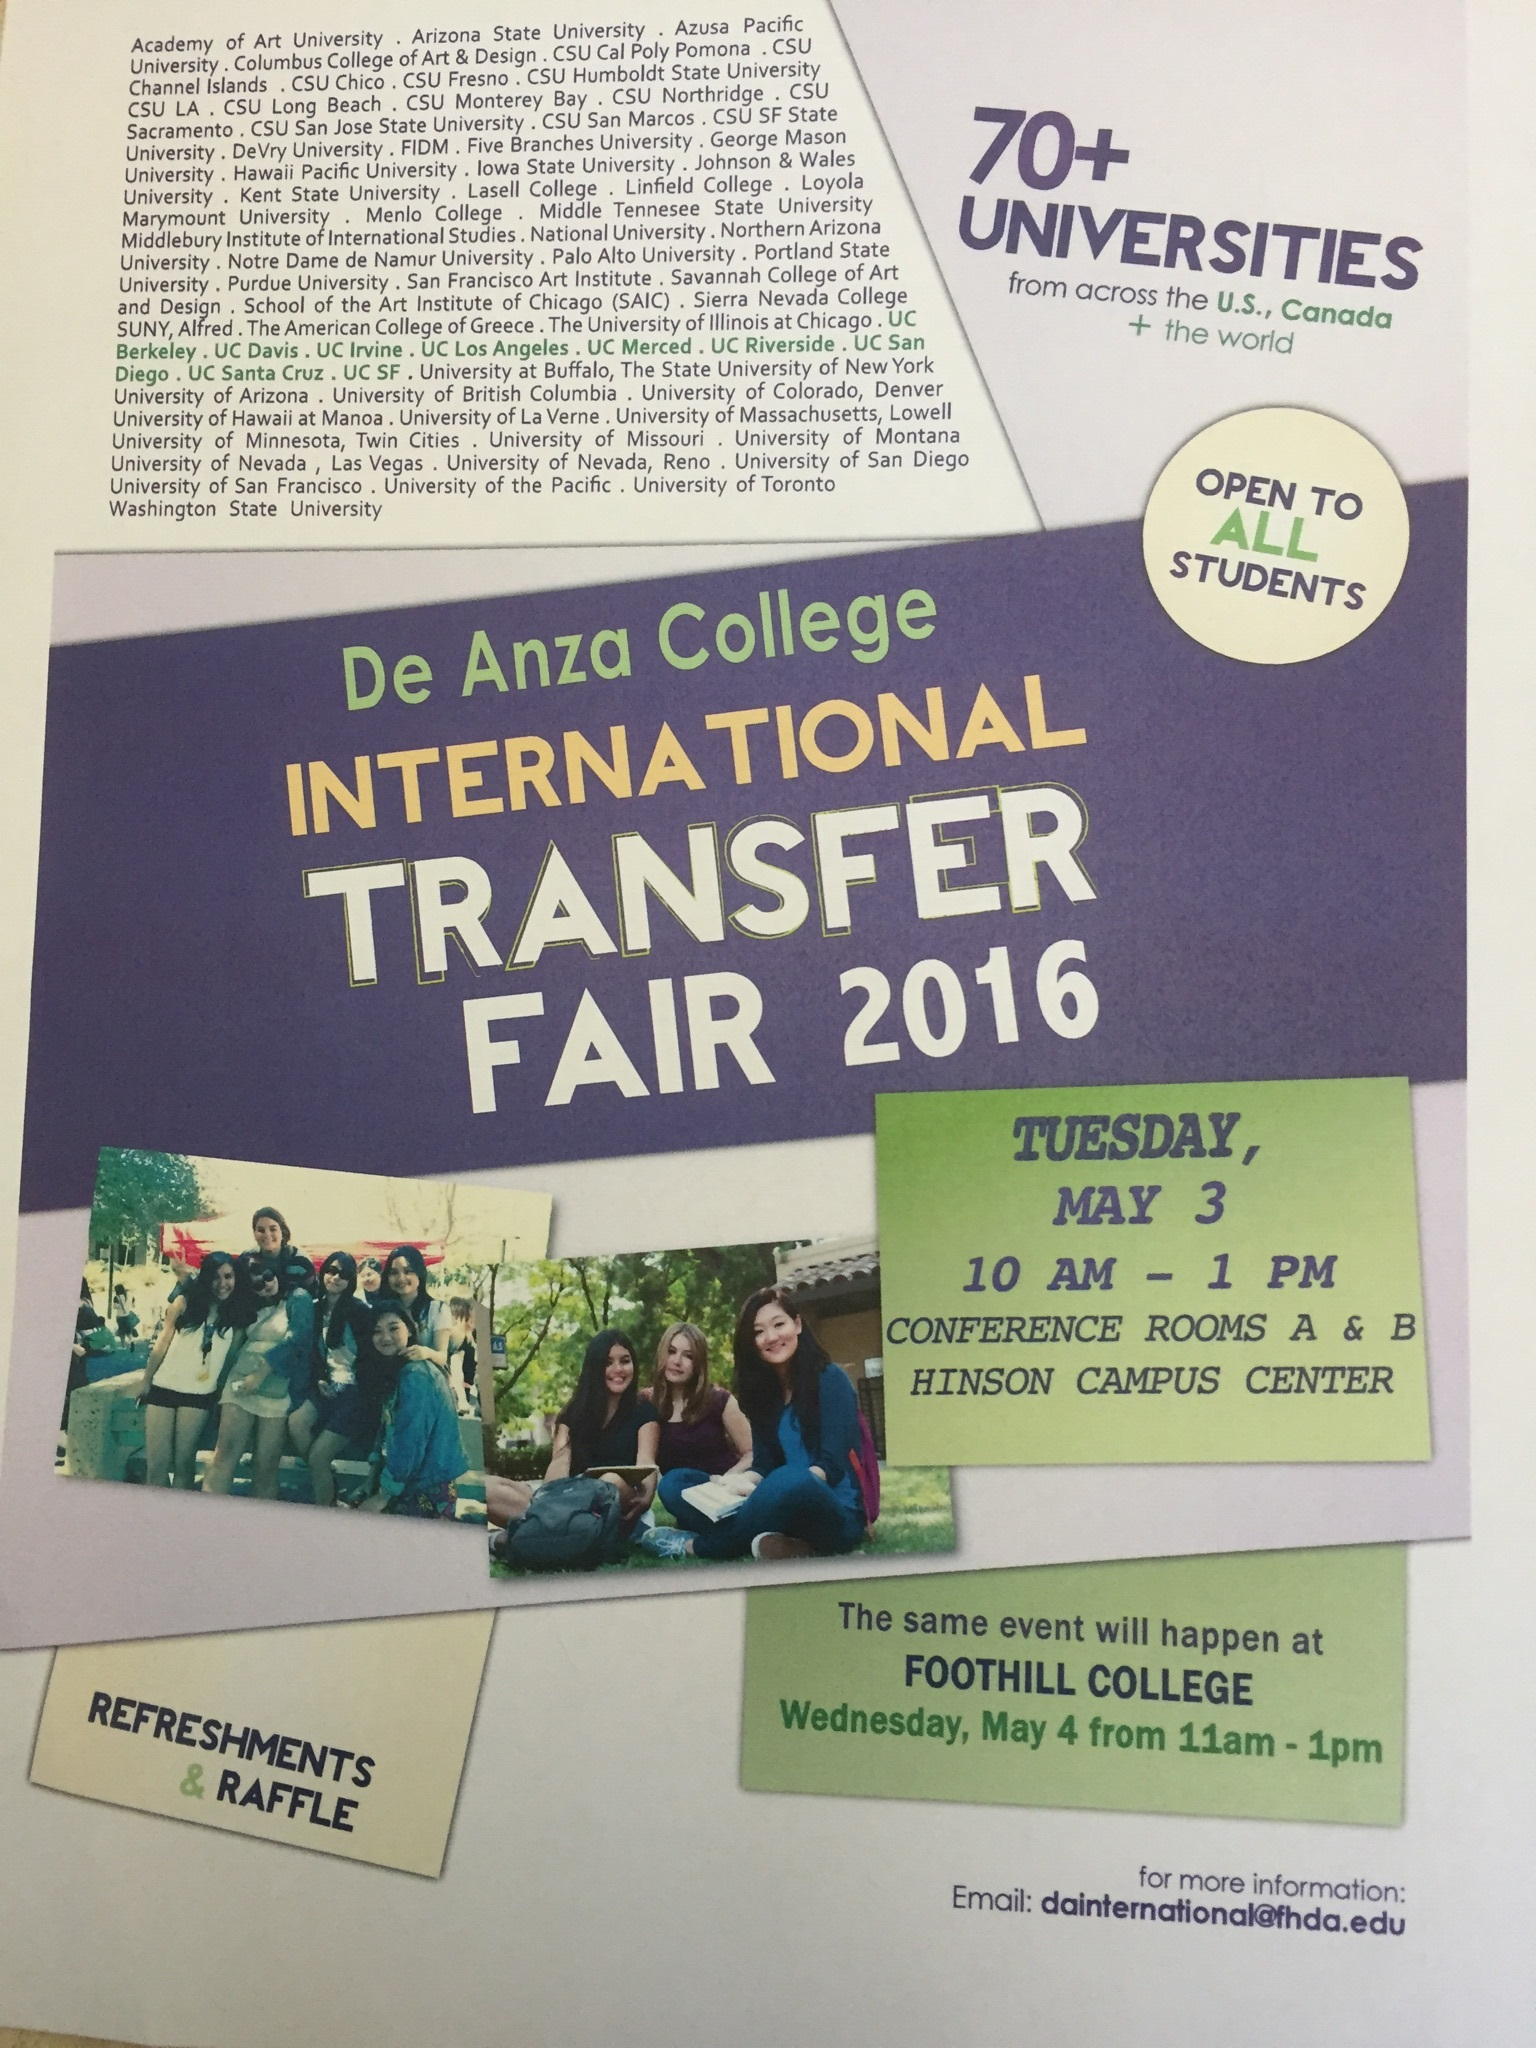 international transfer fair 2016 flyer